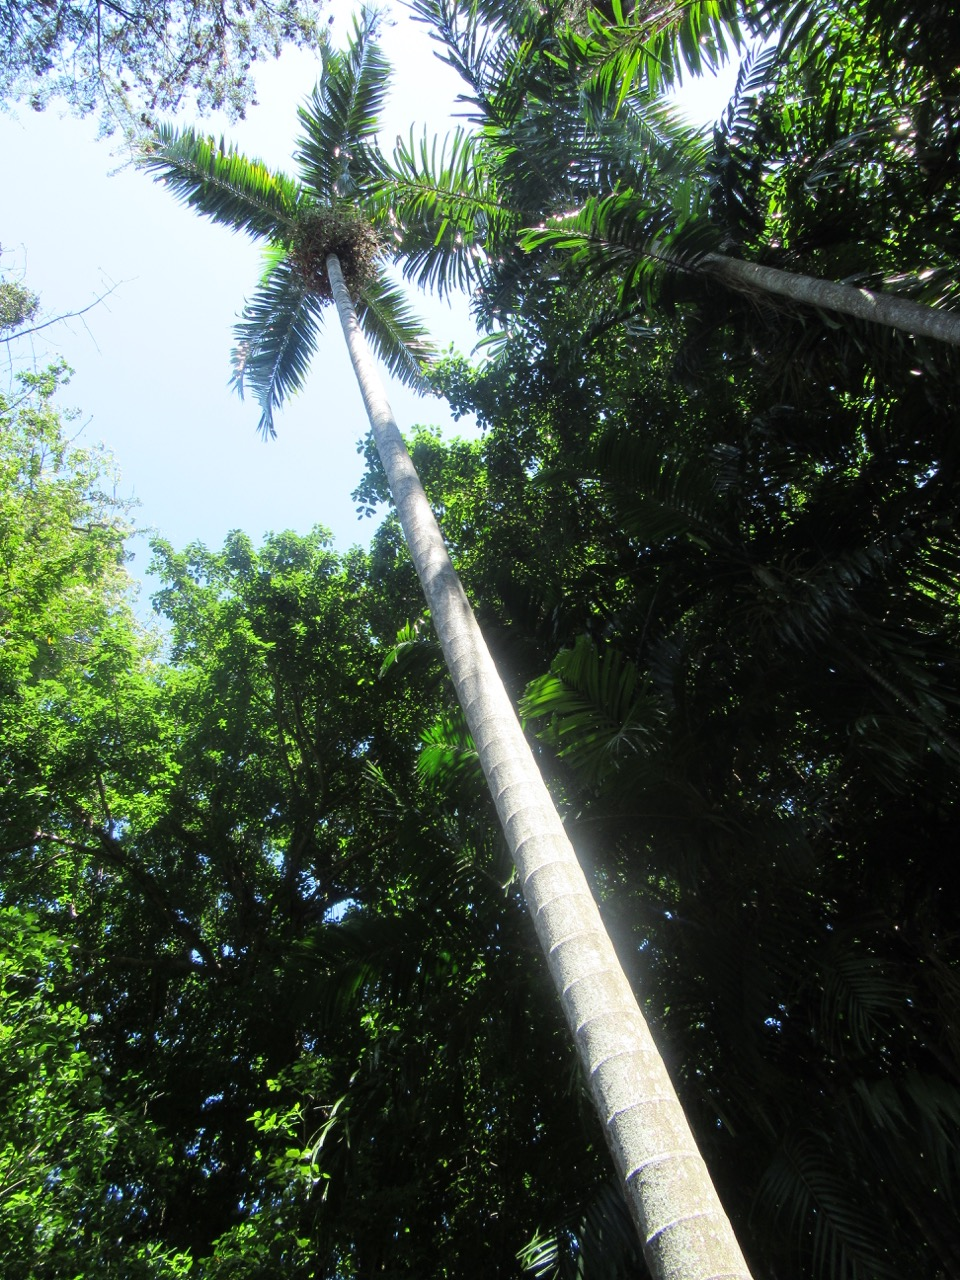 One of the tallest trees at the Rockhampton Botanical Gardens